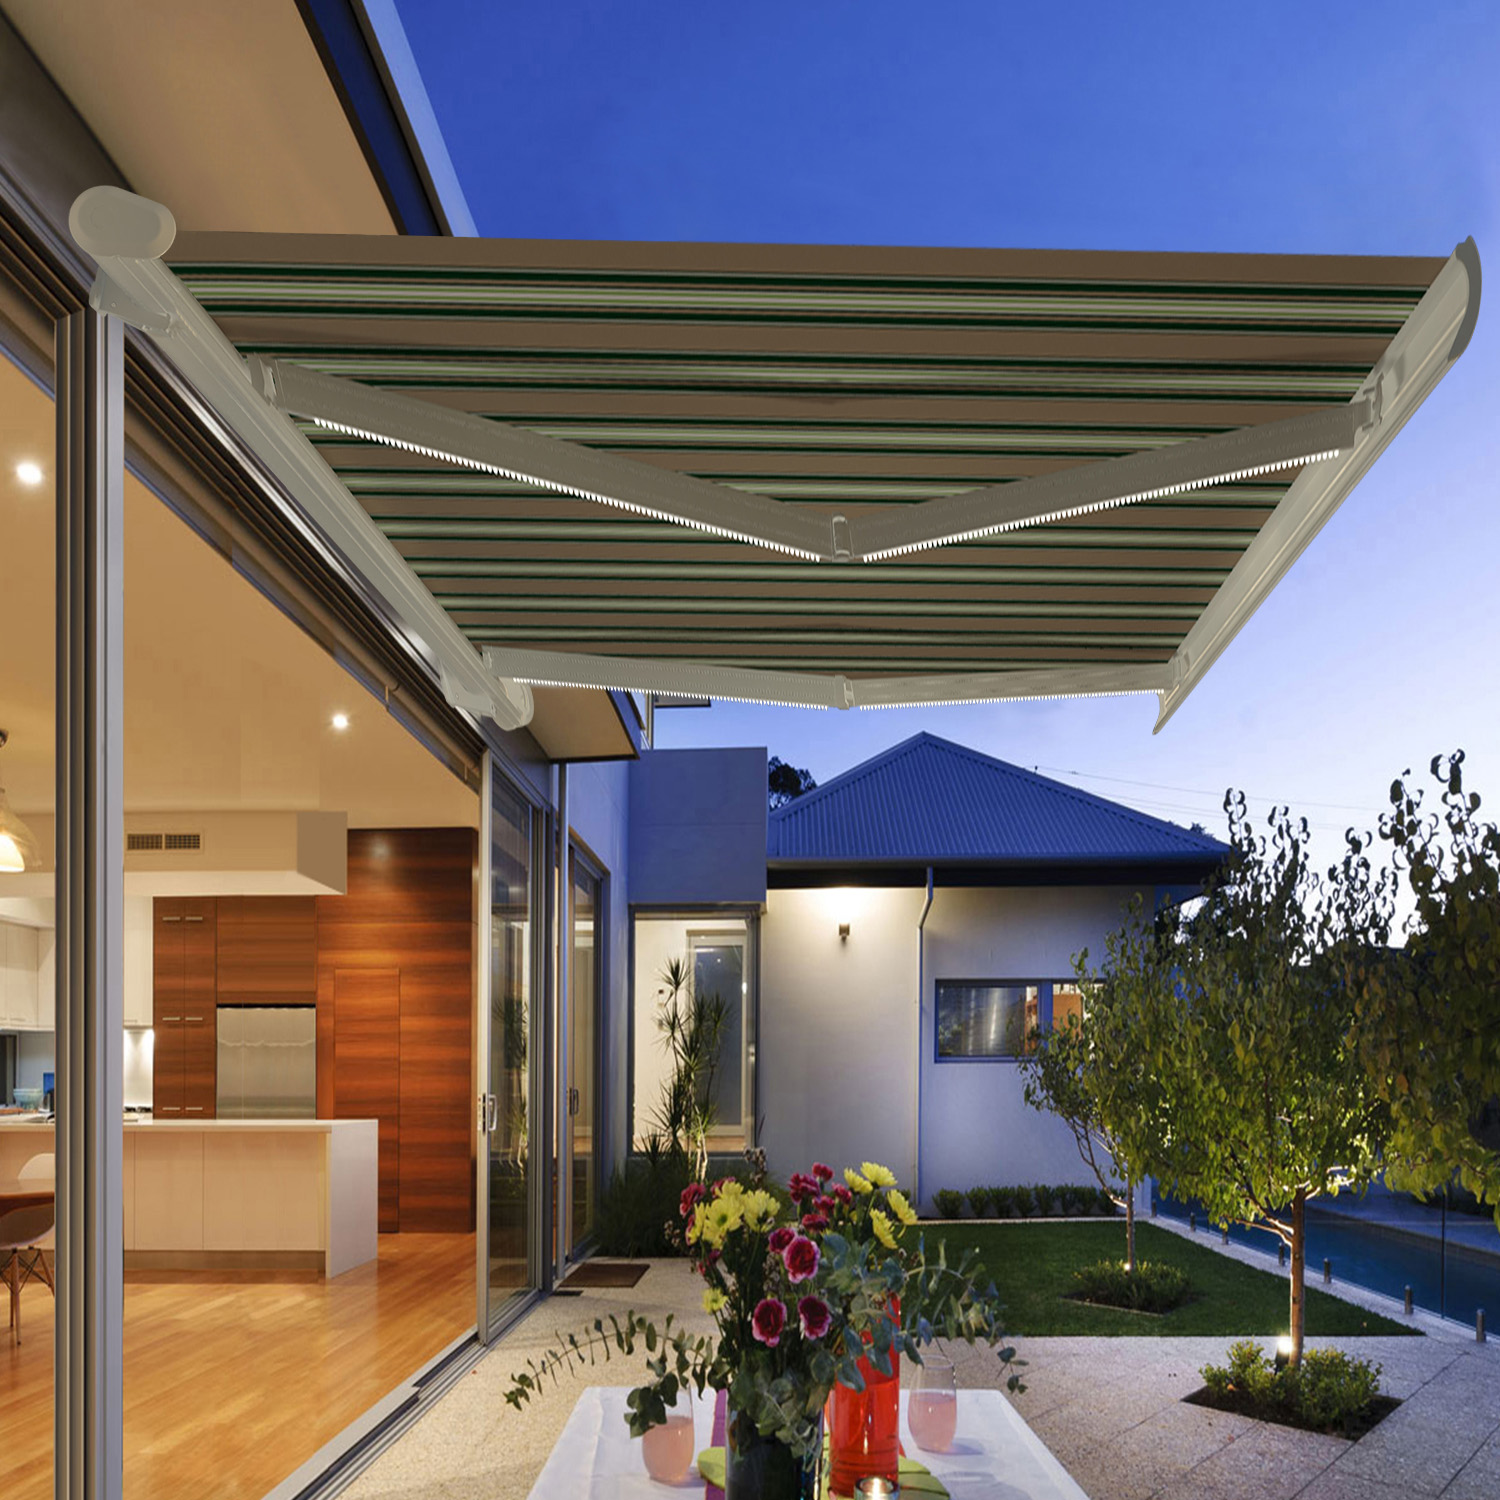 Garden Awning Retractable Canopy Electric Patio Shelter With